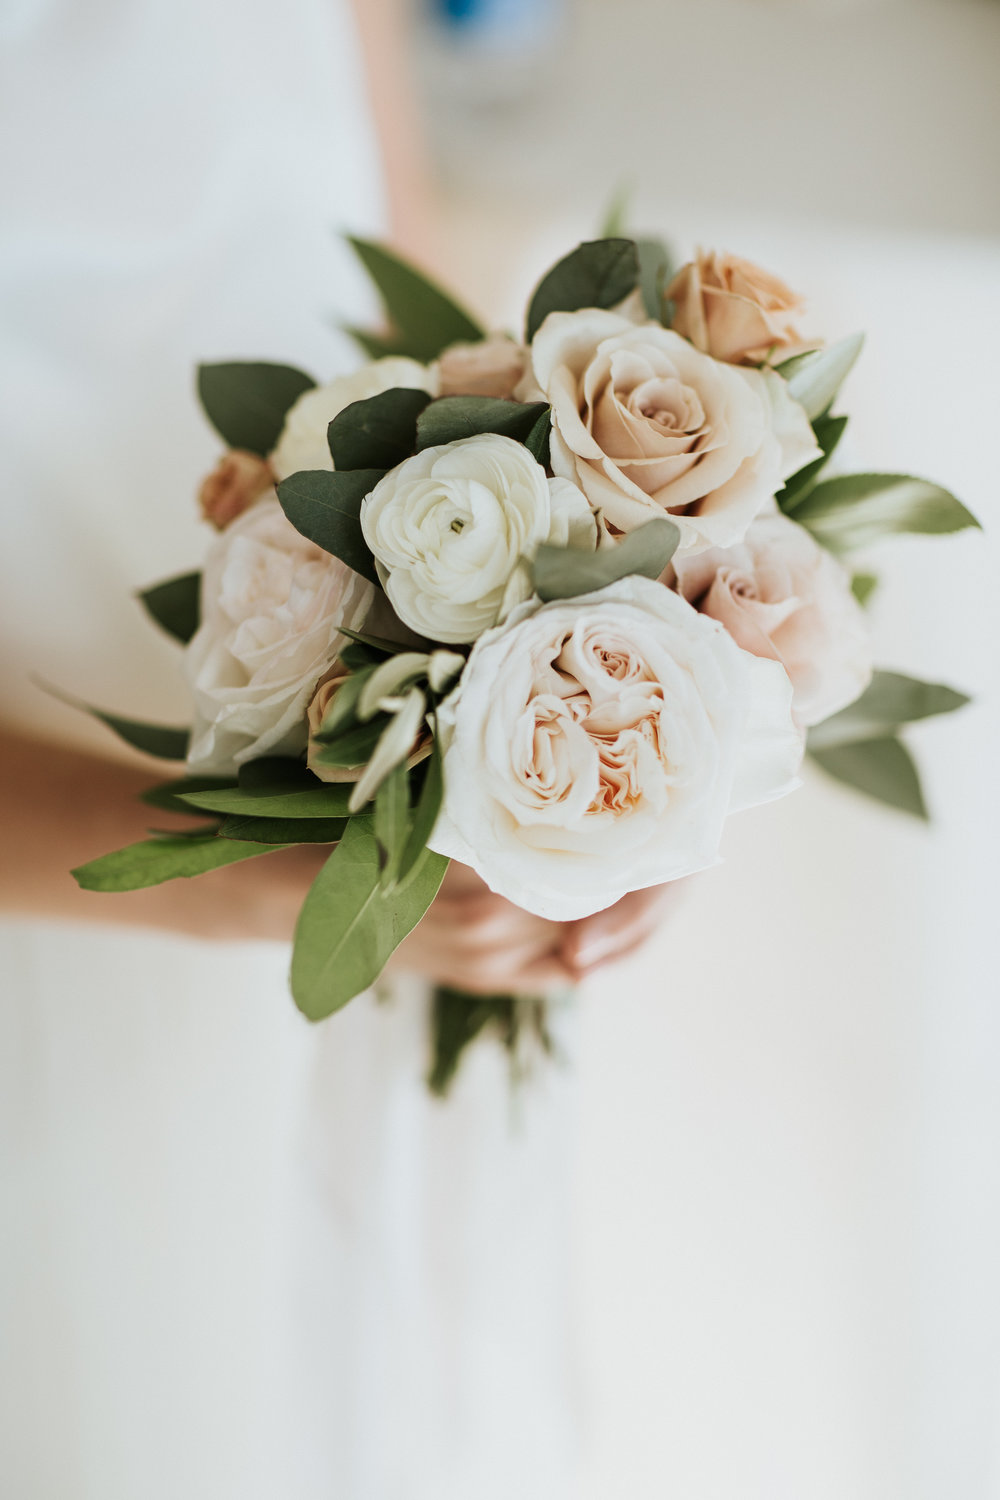 Sweet, bridesmaid bouquet with quicksand & O'Hara roses designed by Fleur Inc at Room 1520.  Photographed by Todd James Photography